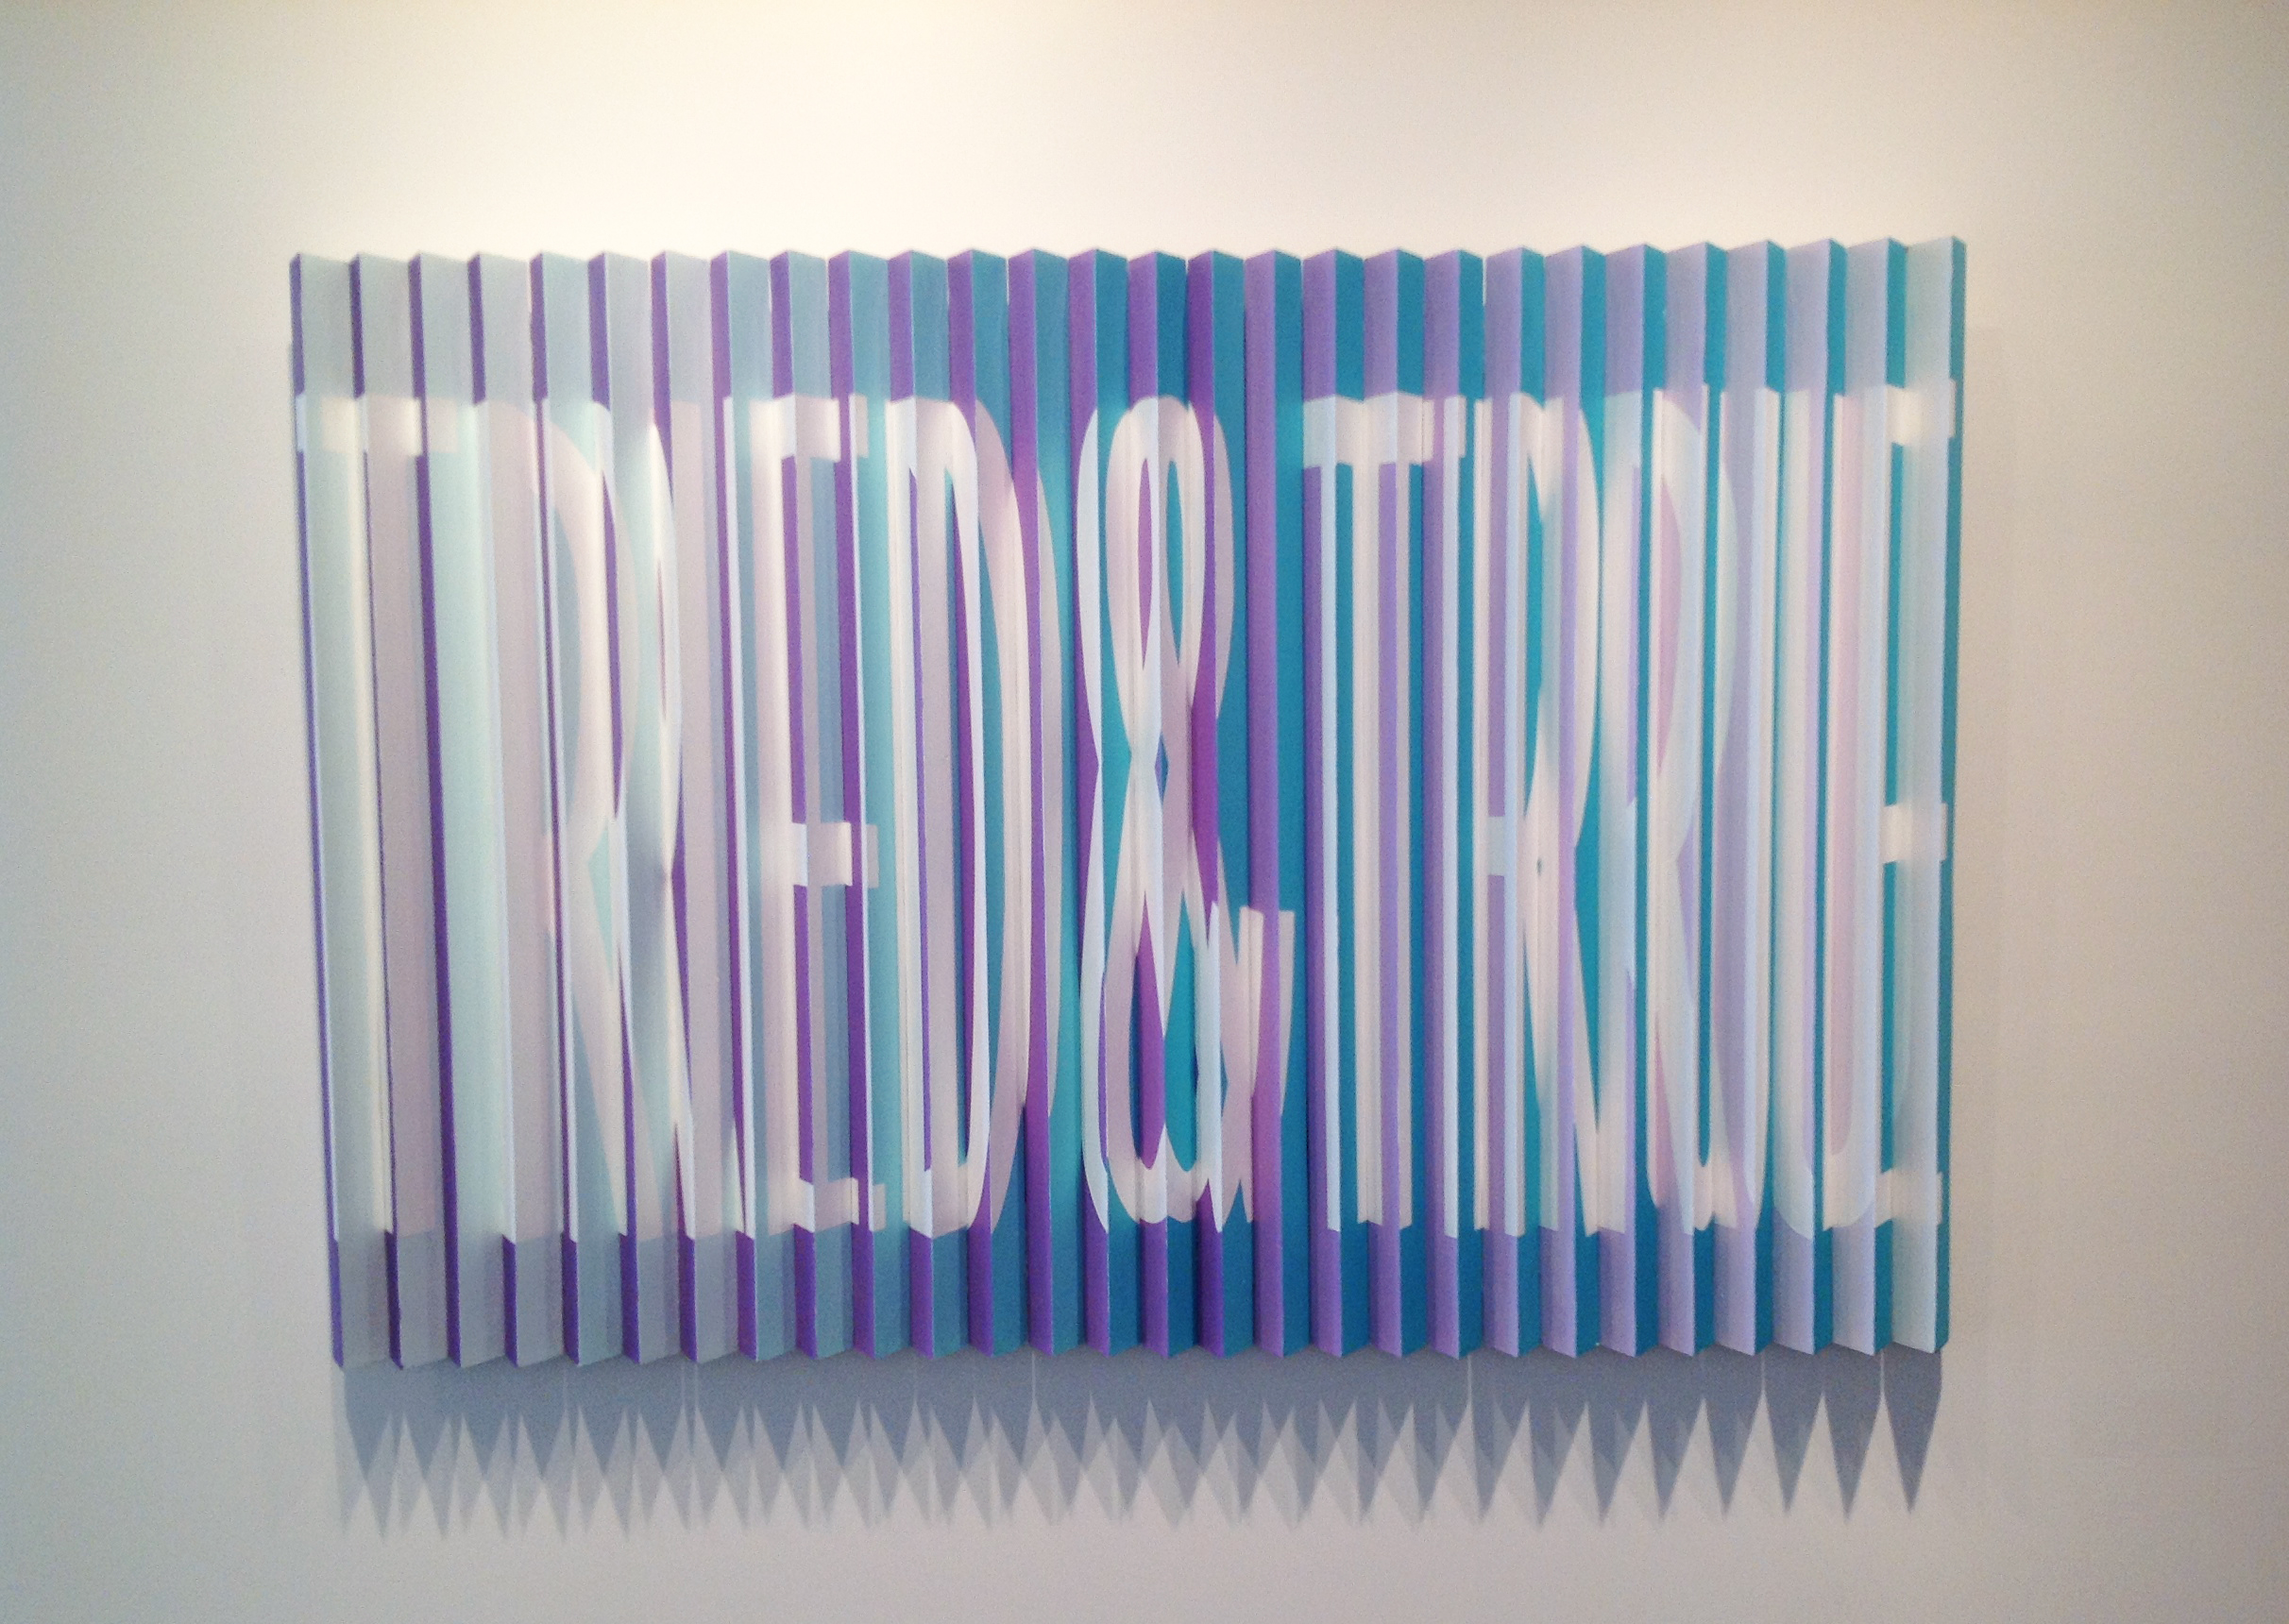 TRIED & TRUE / TIRED & THRU | Acrylic on Wood | 3ft x 4ft | 2013